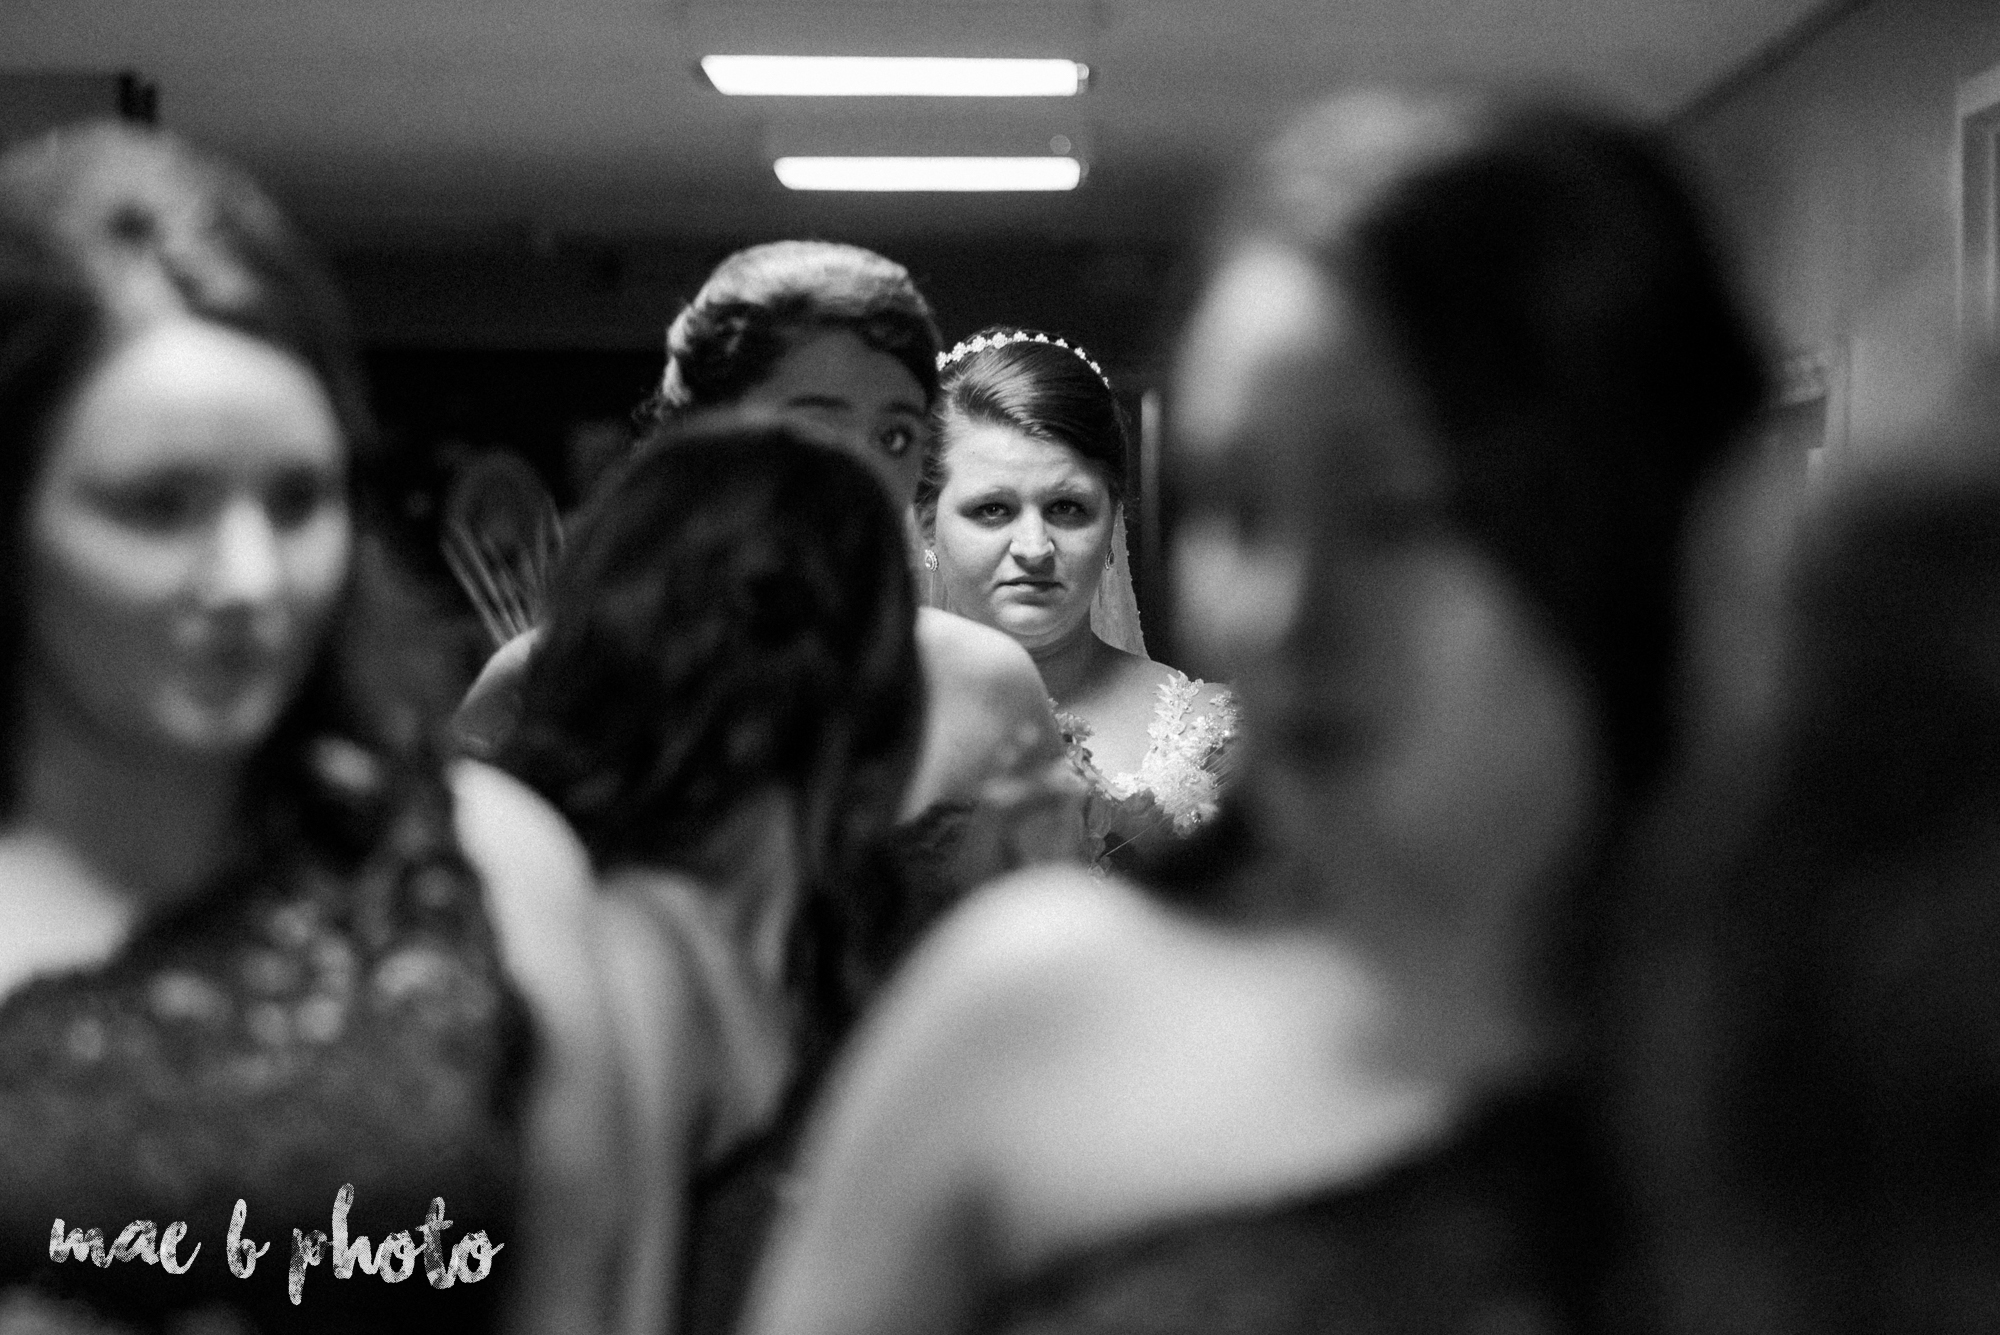 kaylynn & matt's fall zoo wedding at the cleveland metroparks zoo in cleveland ohio photographed by mae b photo-2.jpg